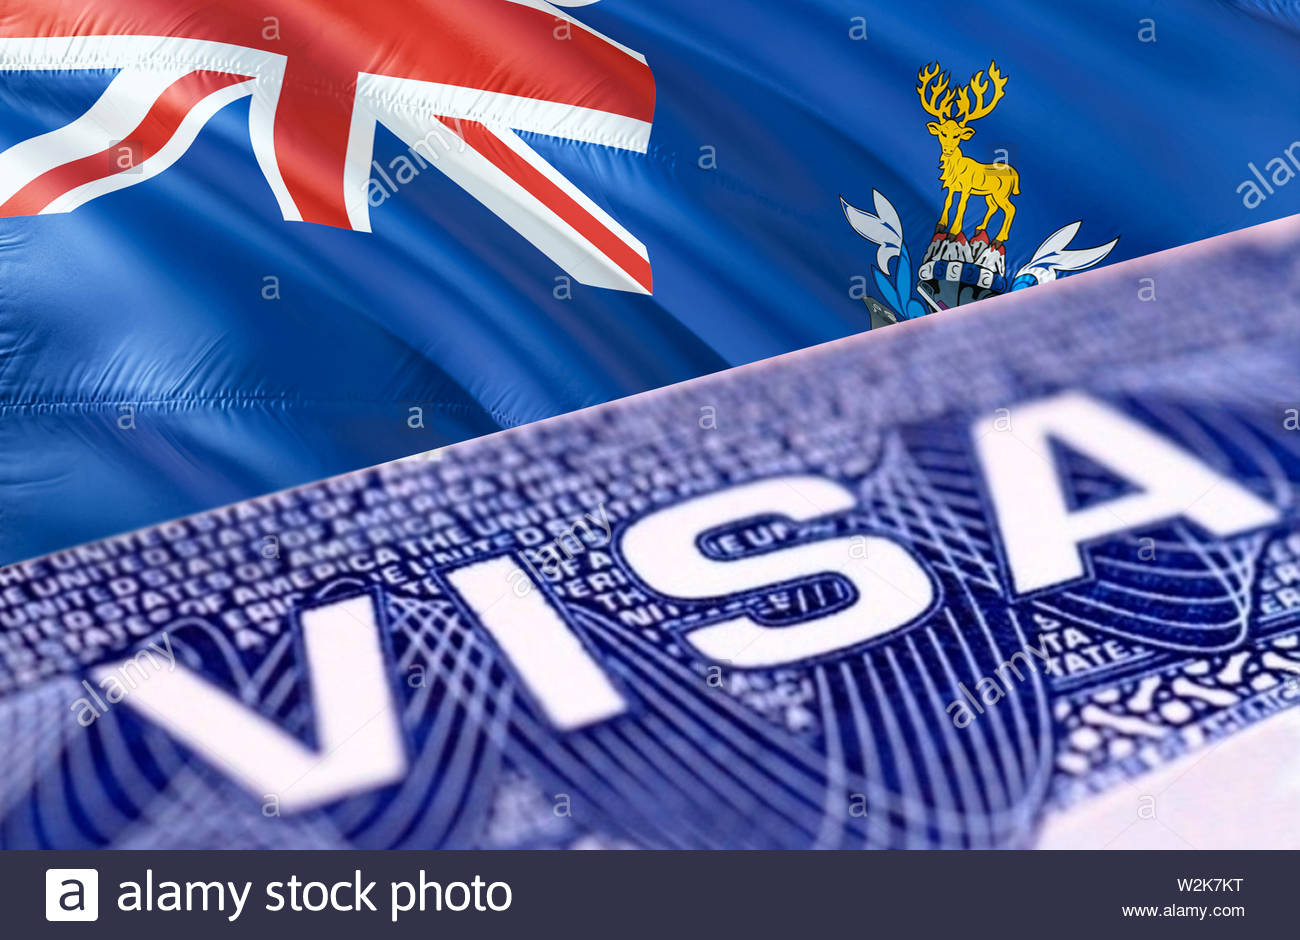 South Georgia and the South Sandwich Islands visa document close up, 3D rendering. Passport visa on South Georgia and the South Sandwich Islands flag. - Stock Image